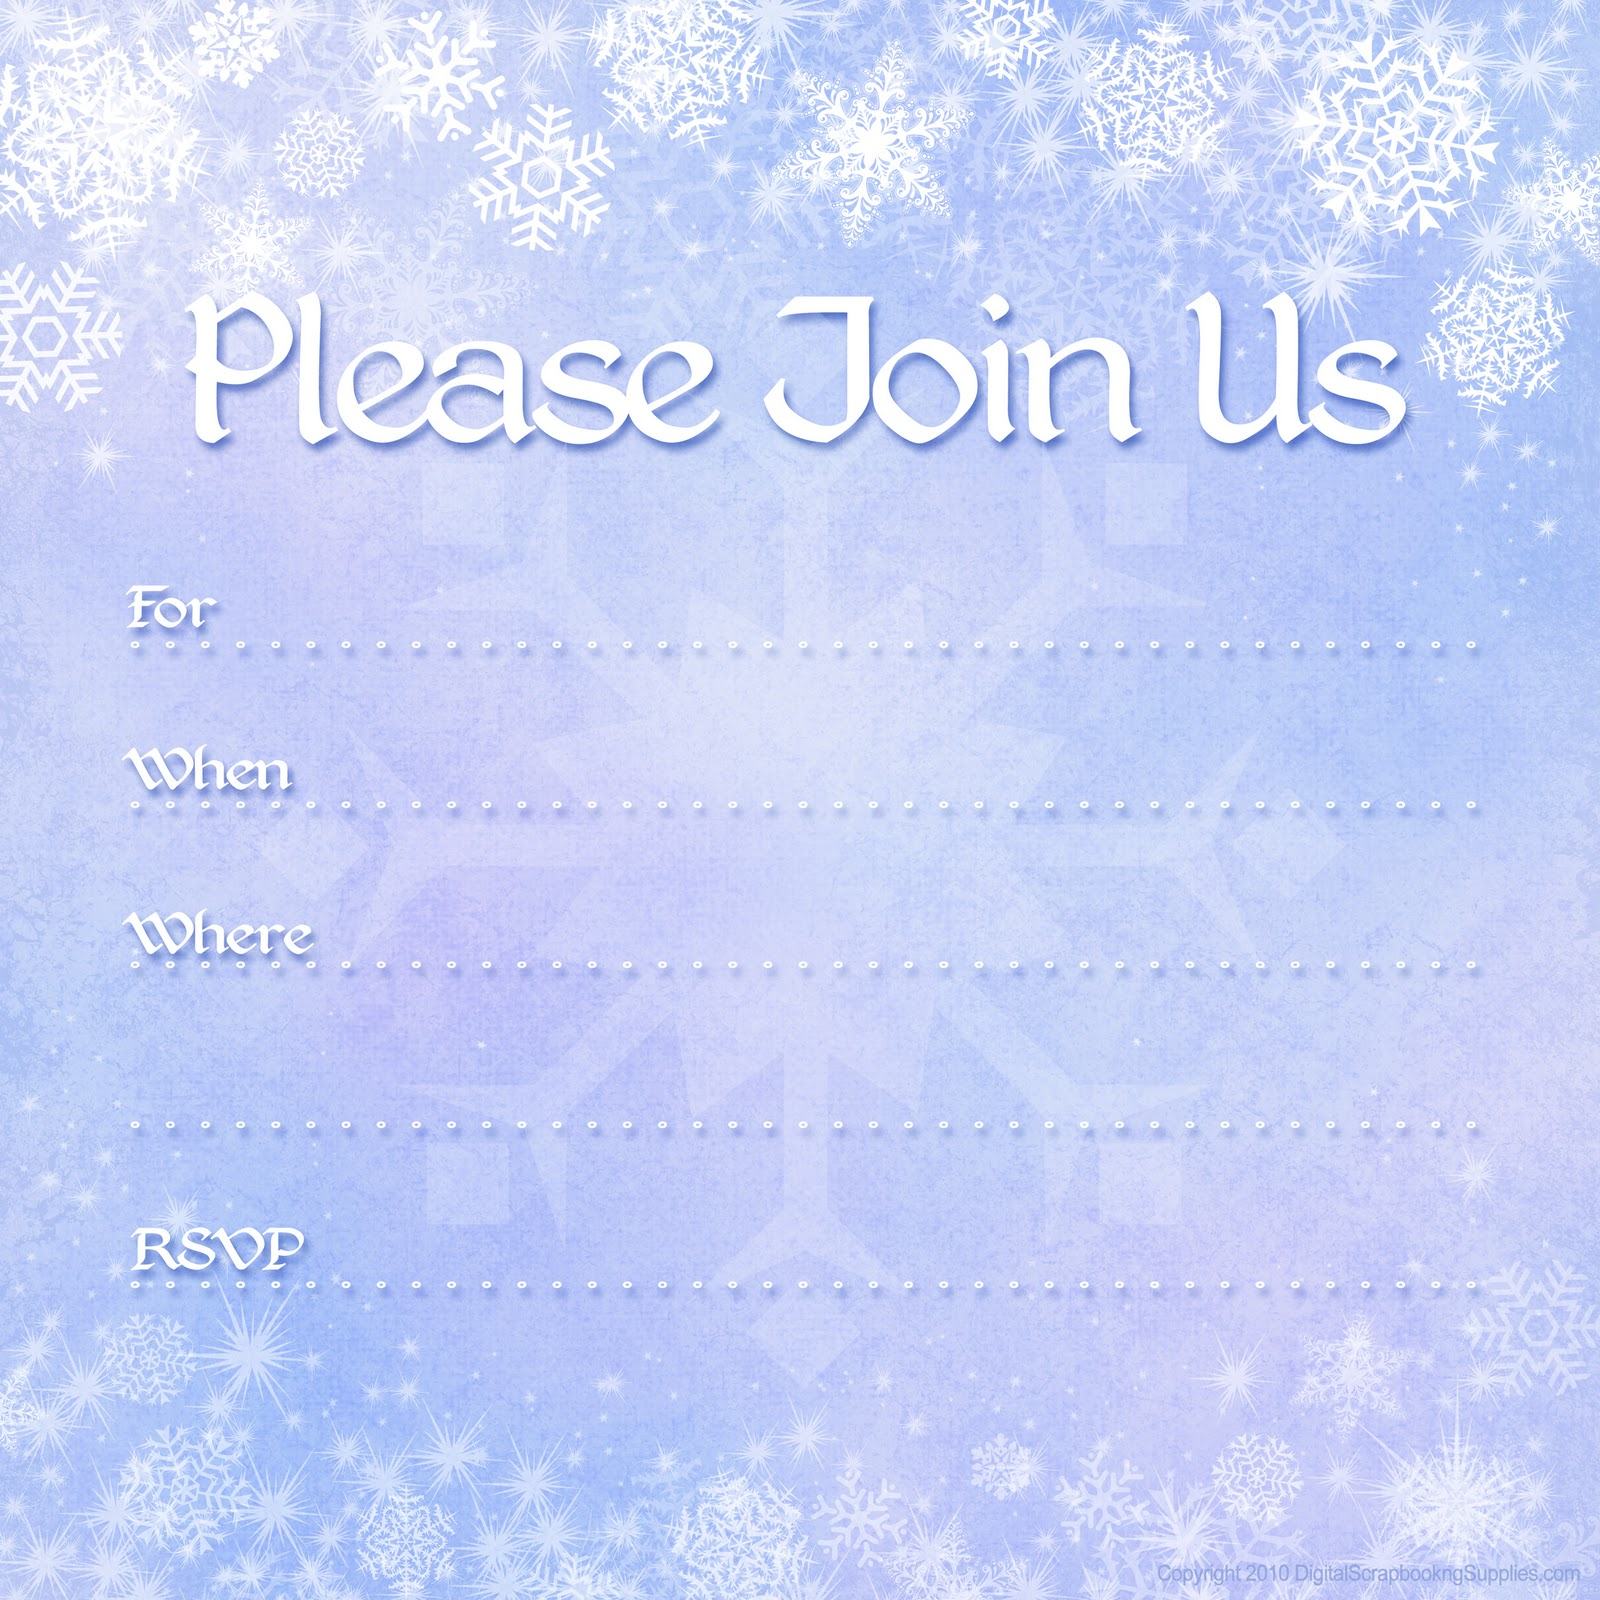 holiday invitation template to see it full size and download it